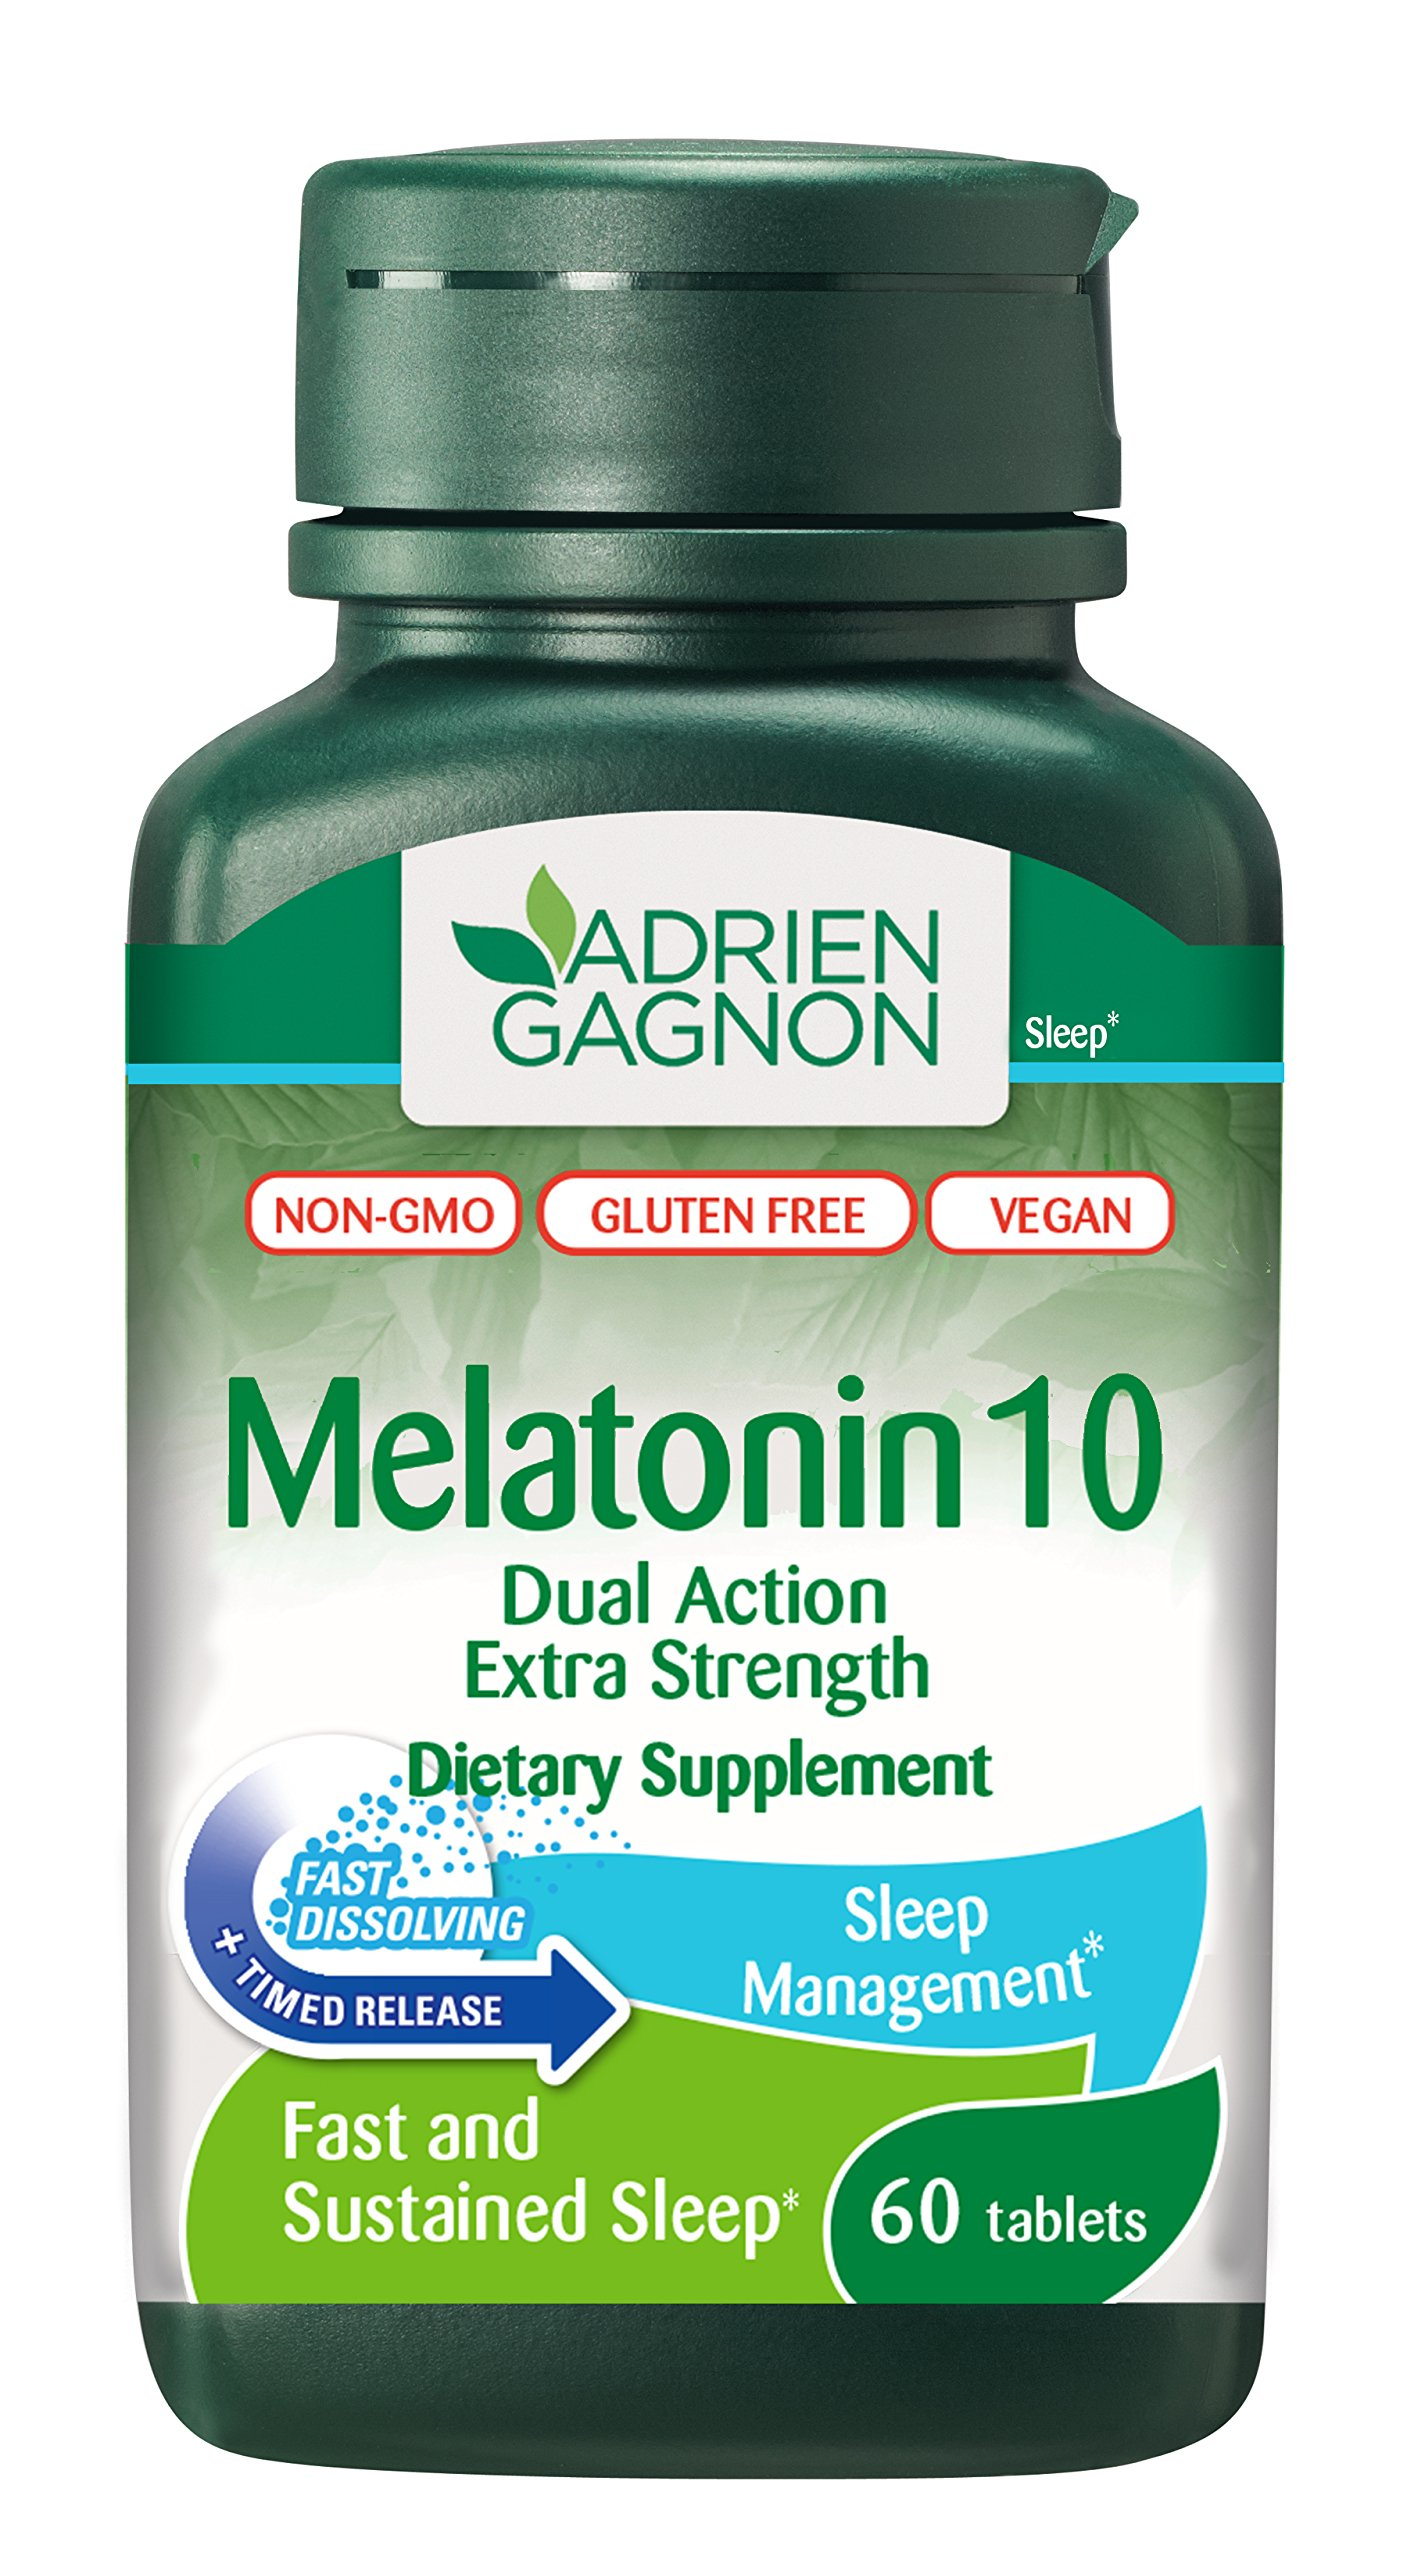 Adrien Gagnon Melatonin 10 mg - Extra Strength Sleep Aid - All Natural Sleeping Pills for